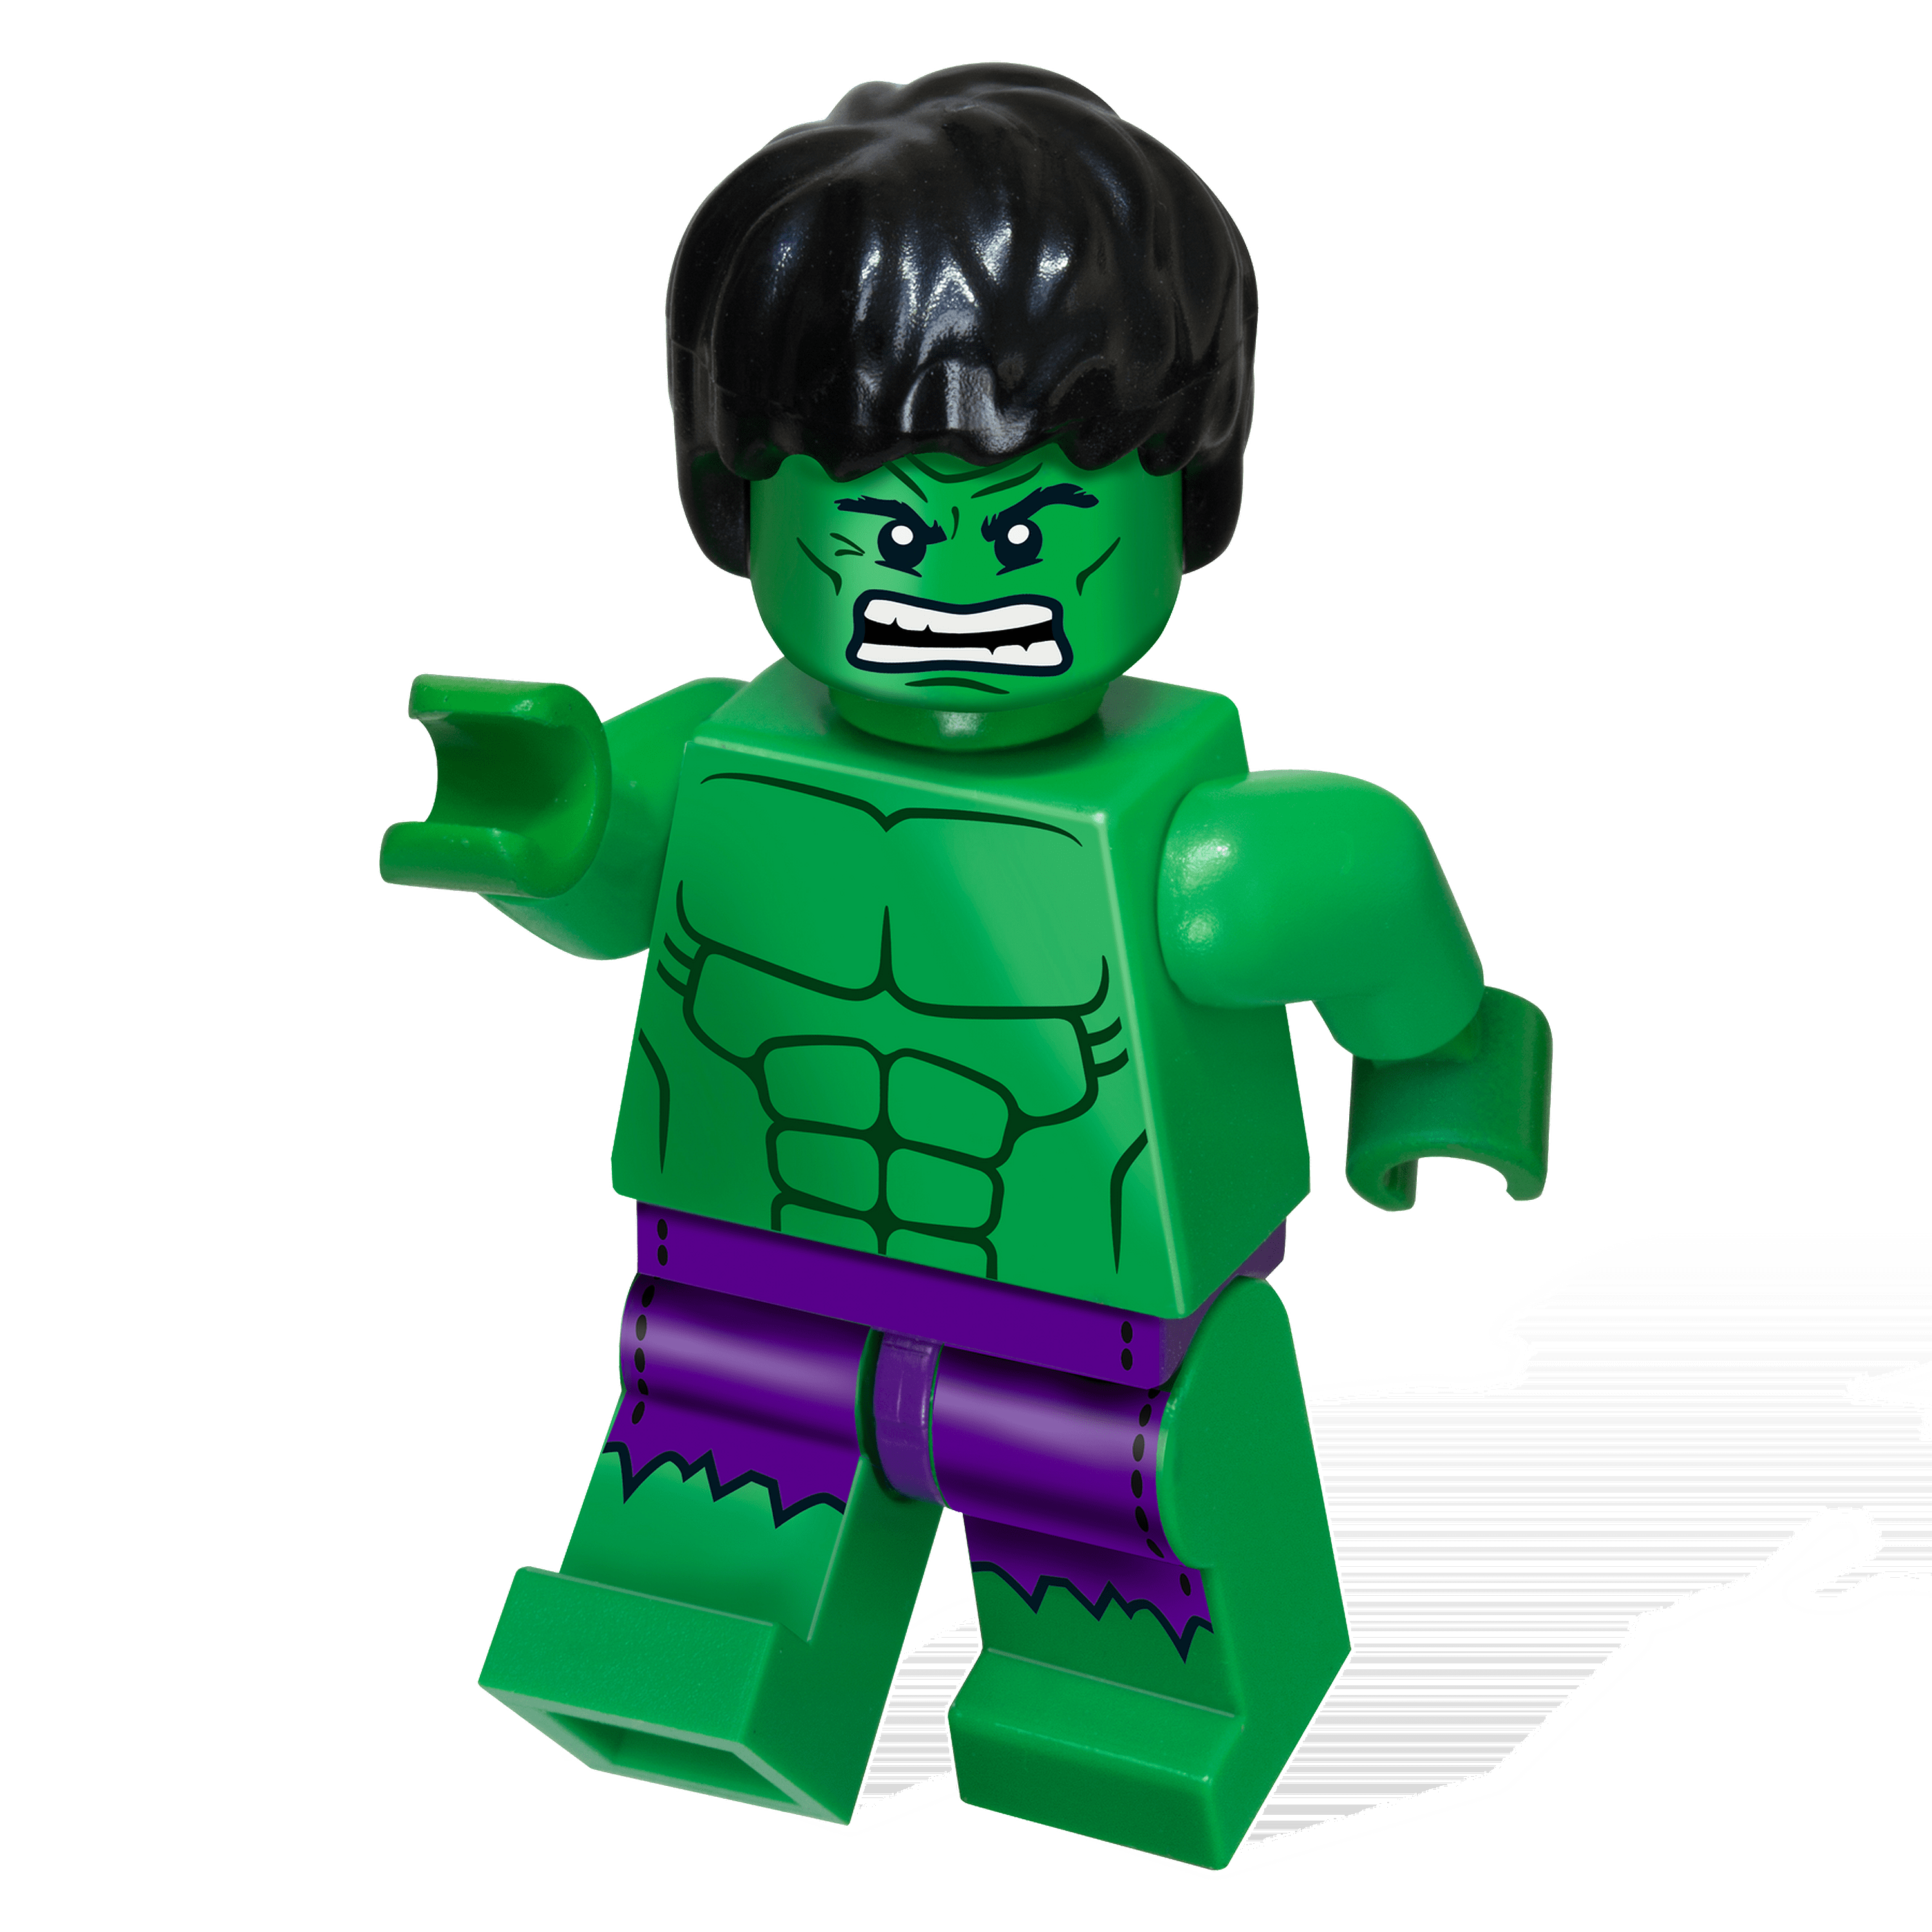 png black and white Hulk clip art png. Lego clipart toy lego.